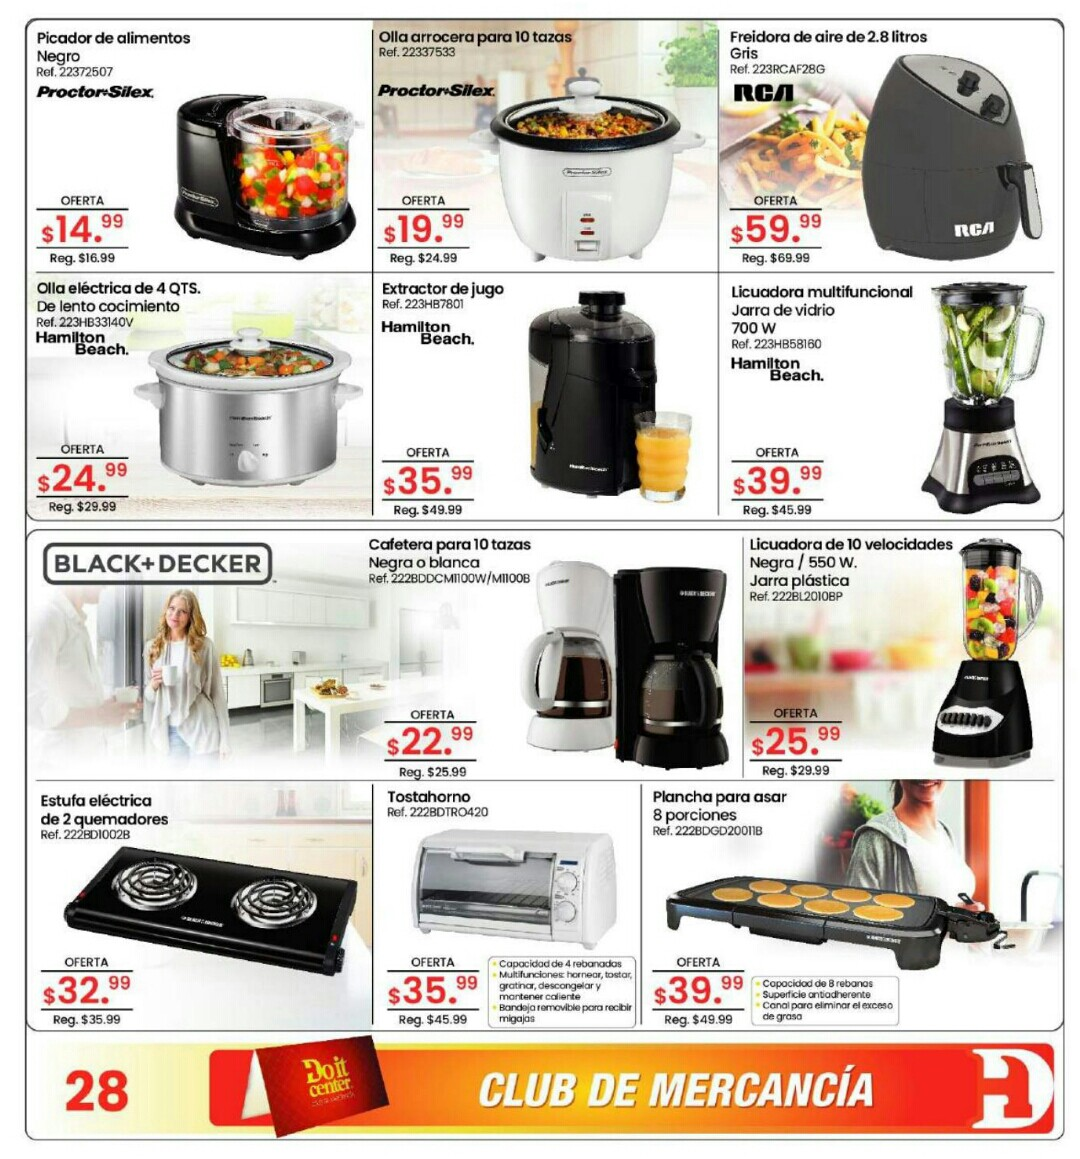 Catalogo Doit Center Verano 2019 página 28